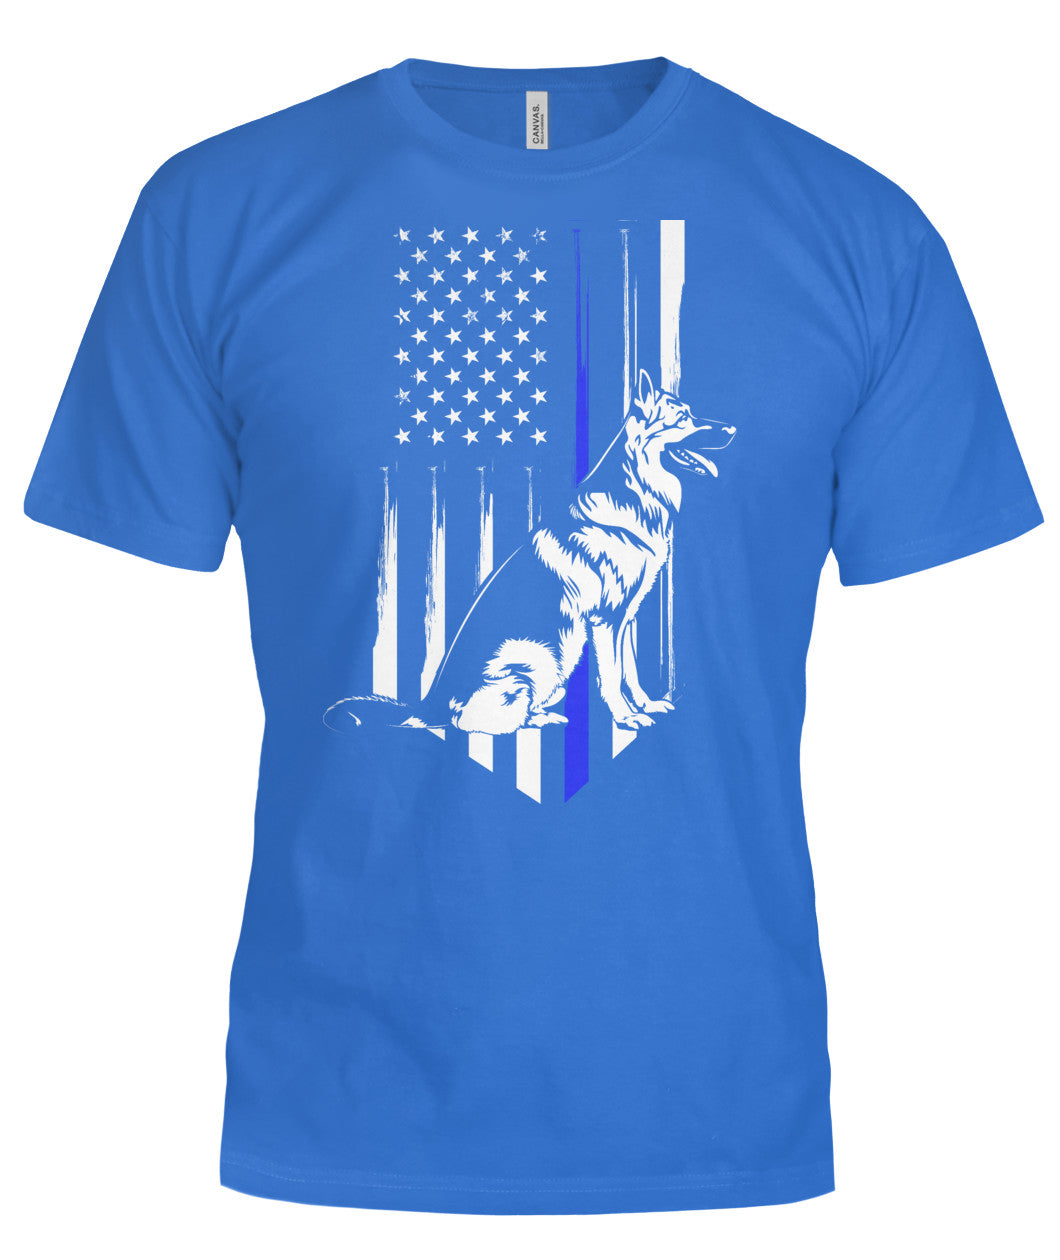 Thin Blue Line - Police K9 T-Shirt